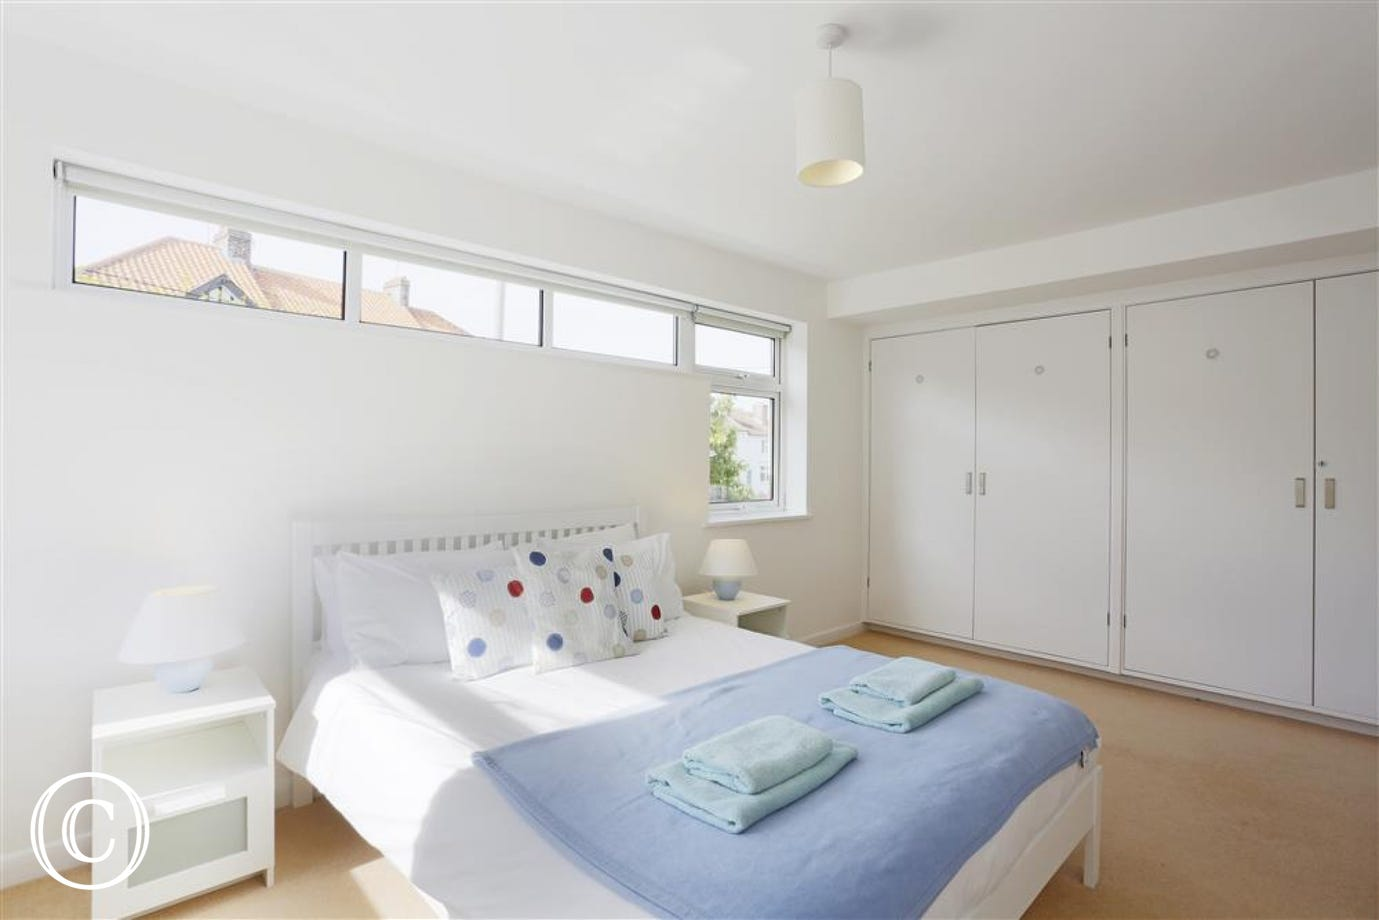 Two of you can relax in this main king size bedded room with plenty of windows for light and views into the garden below